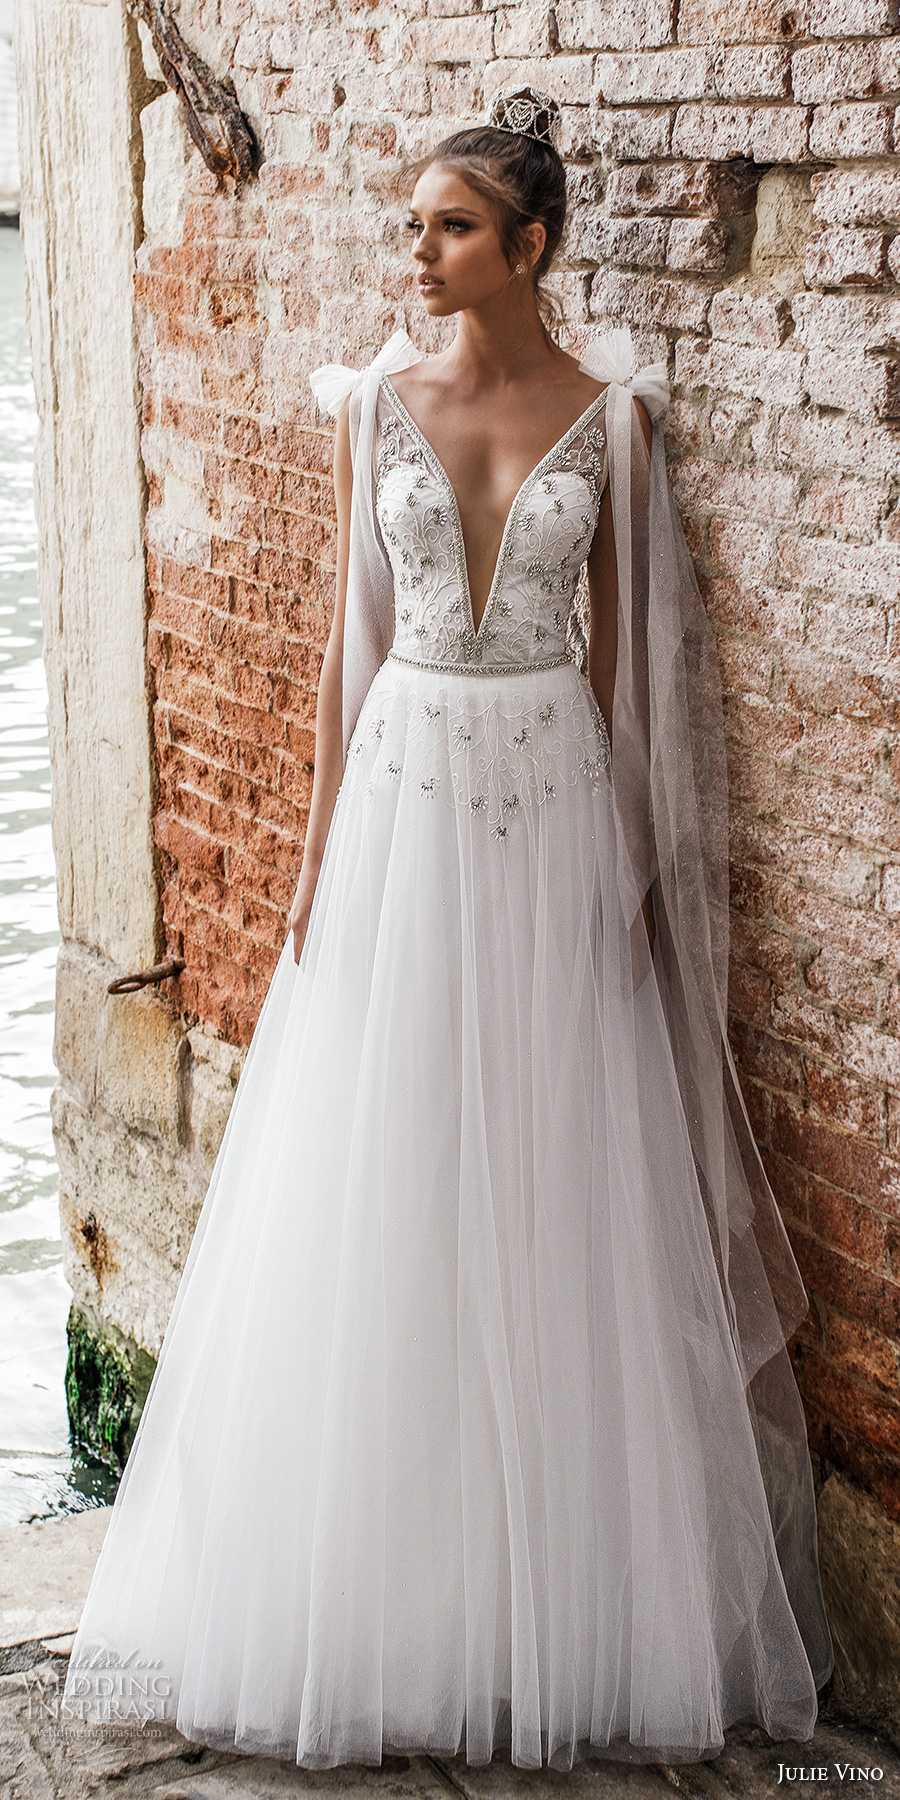 julie vino spring 2018 bridal sleeveless deep plunging v neck heavily embellished bodice romantic a line wedding dress open v back sweep train (08) mv